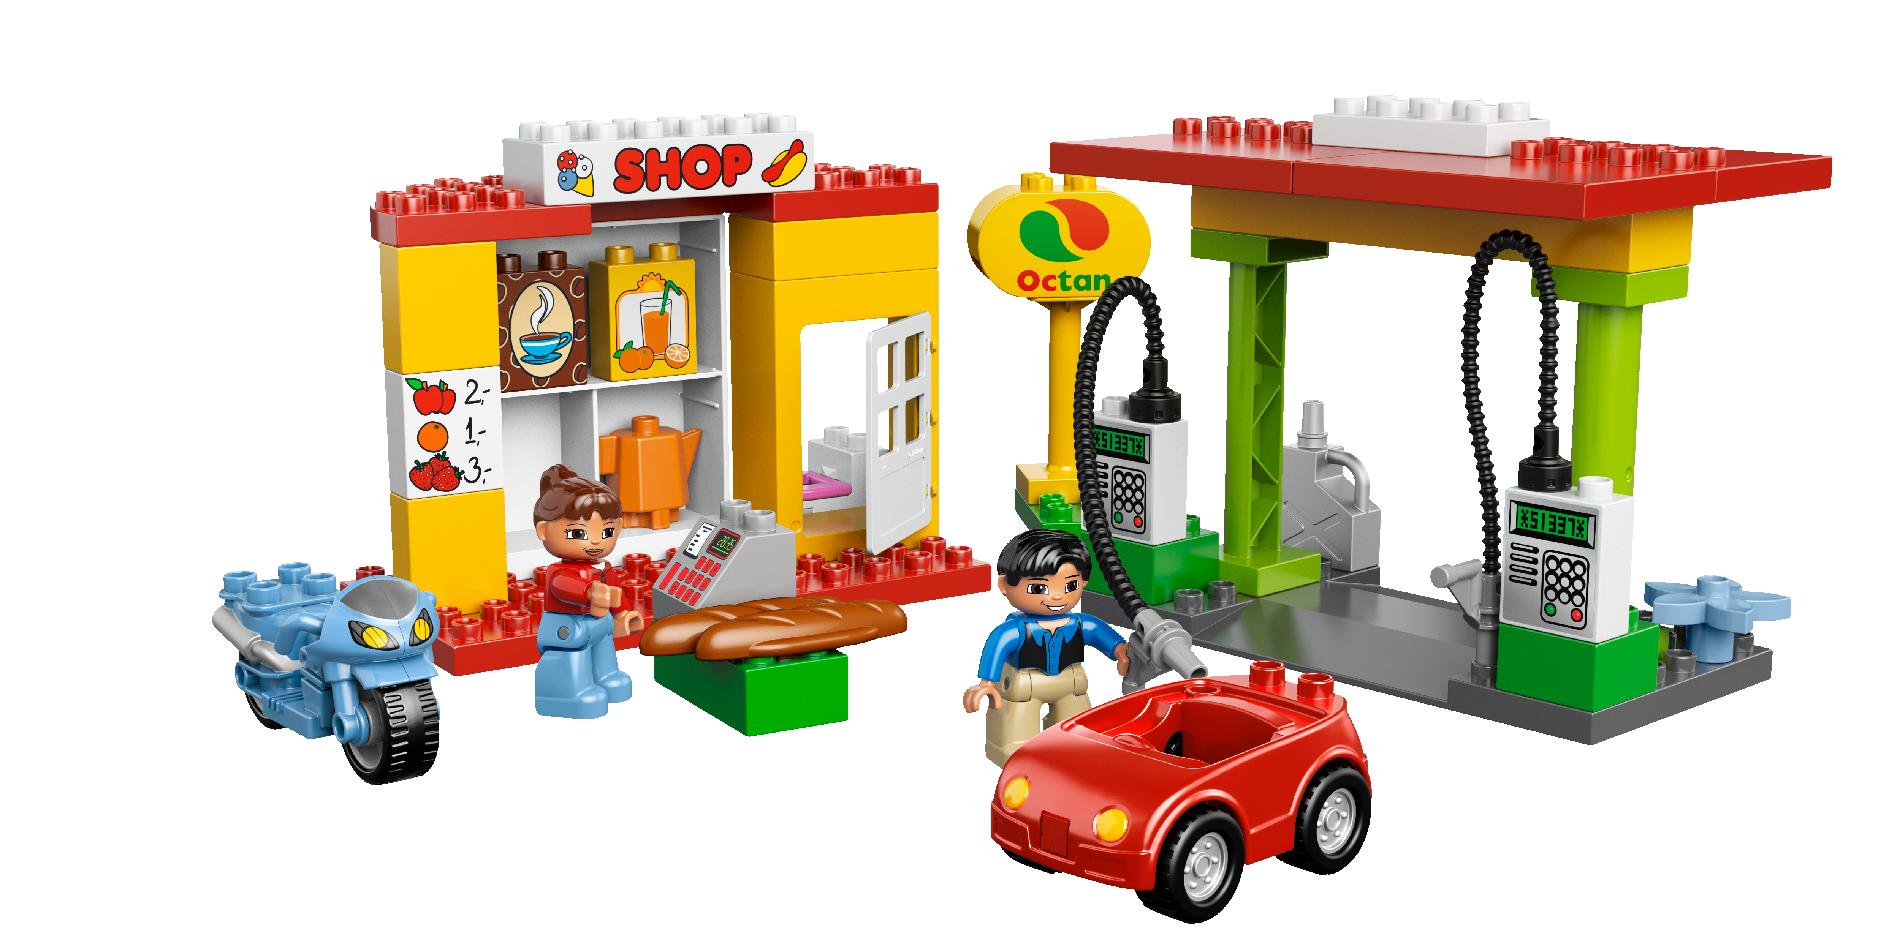 Blocks & Building Sets at mygofer.com